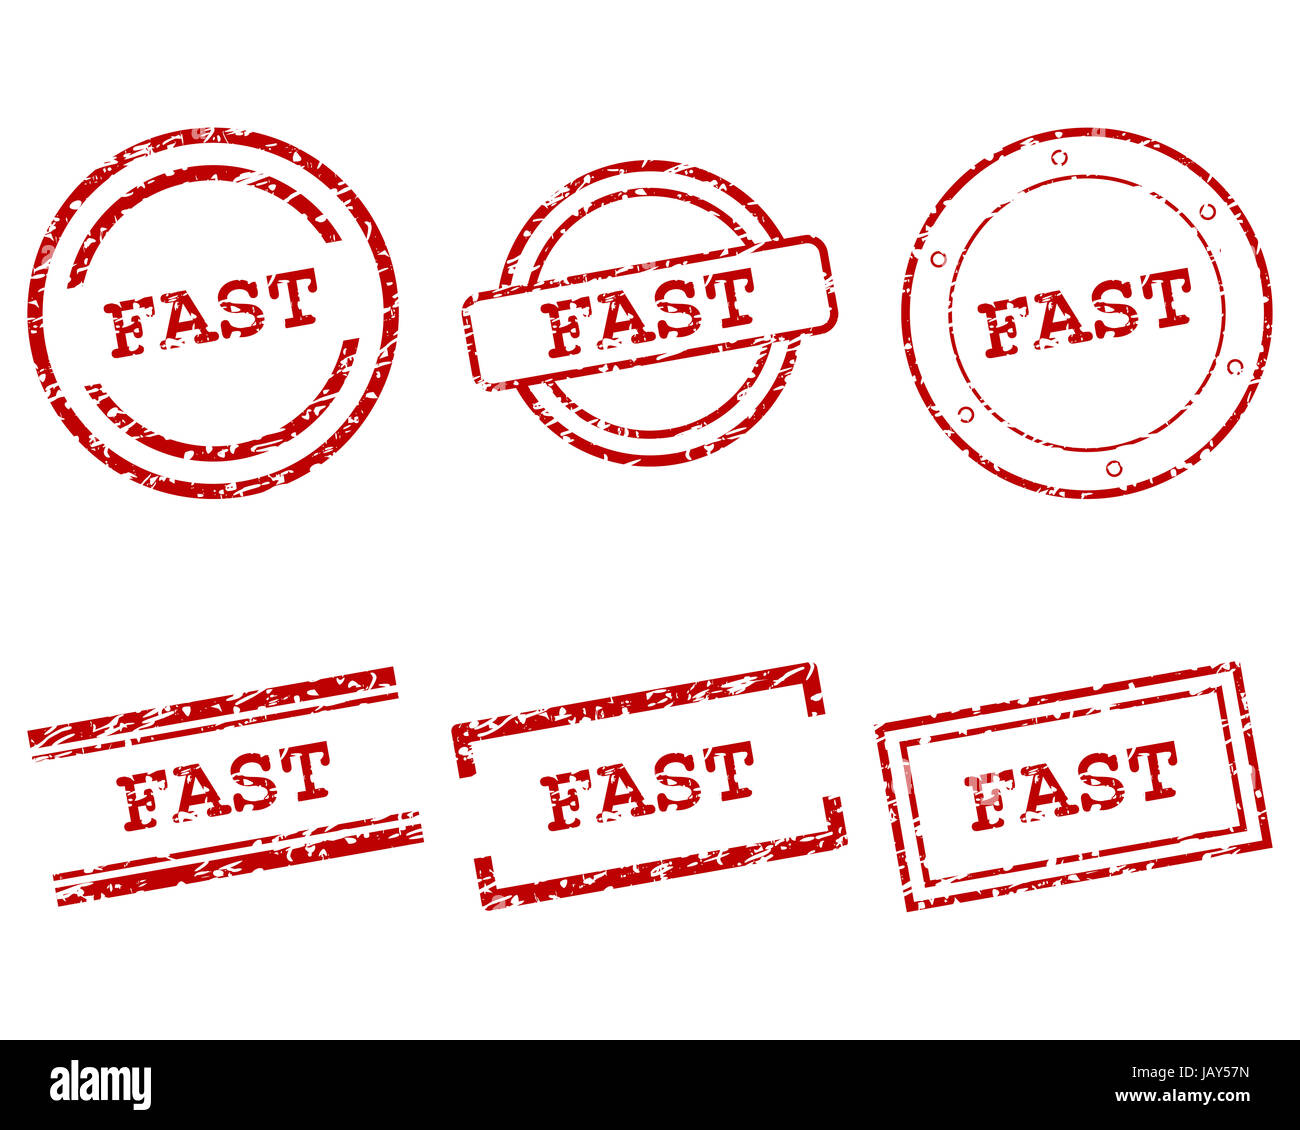 Fast Stempel - Stock Image